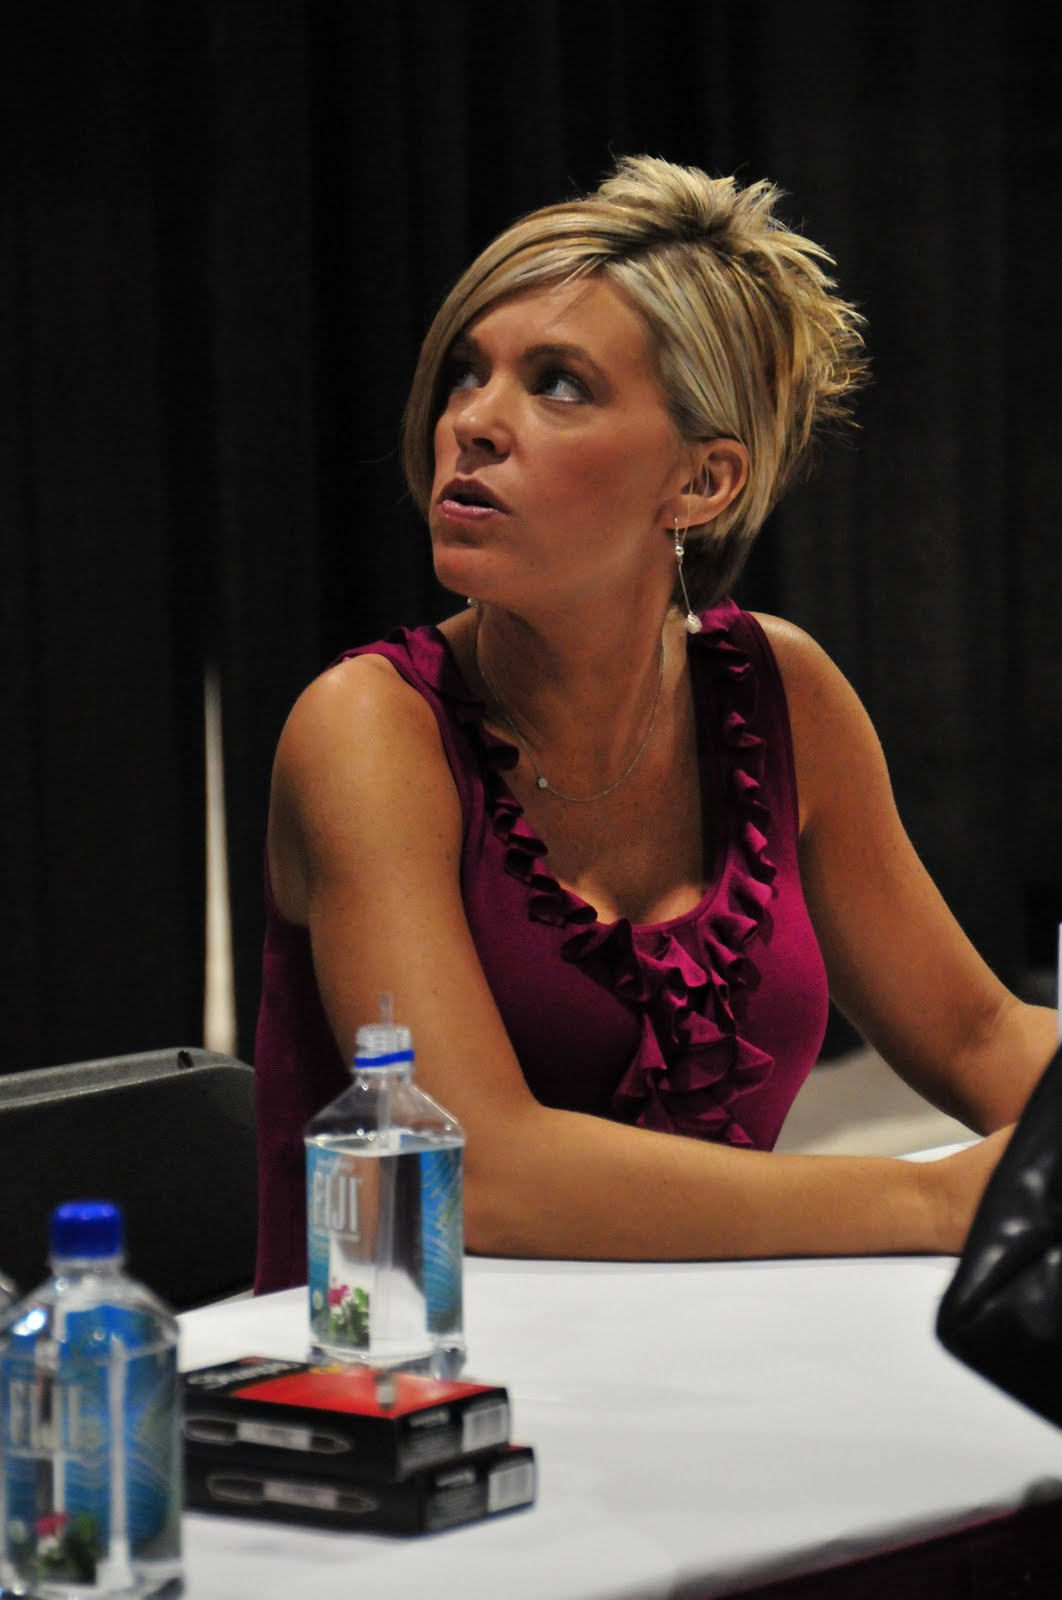 Shorthairtsyles Celebrity 2012 Kate Gosselin In Bob